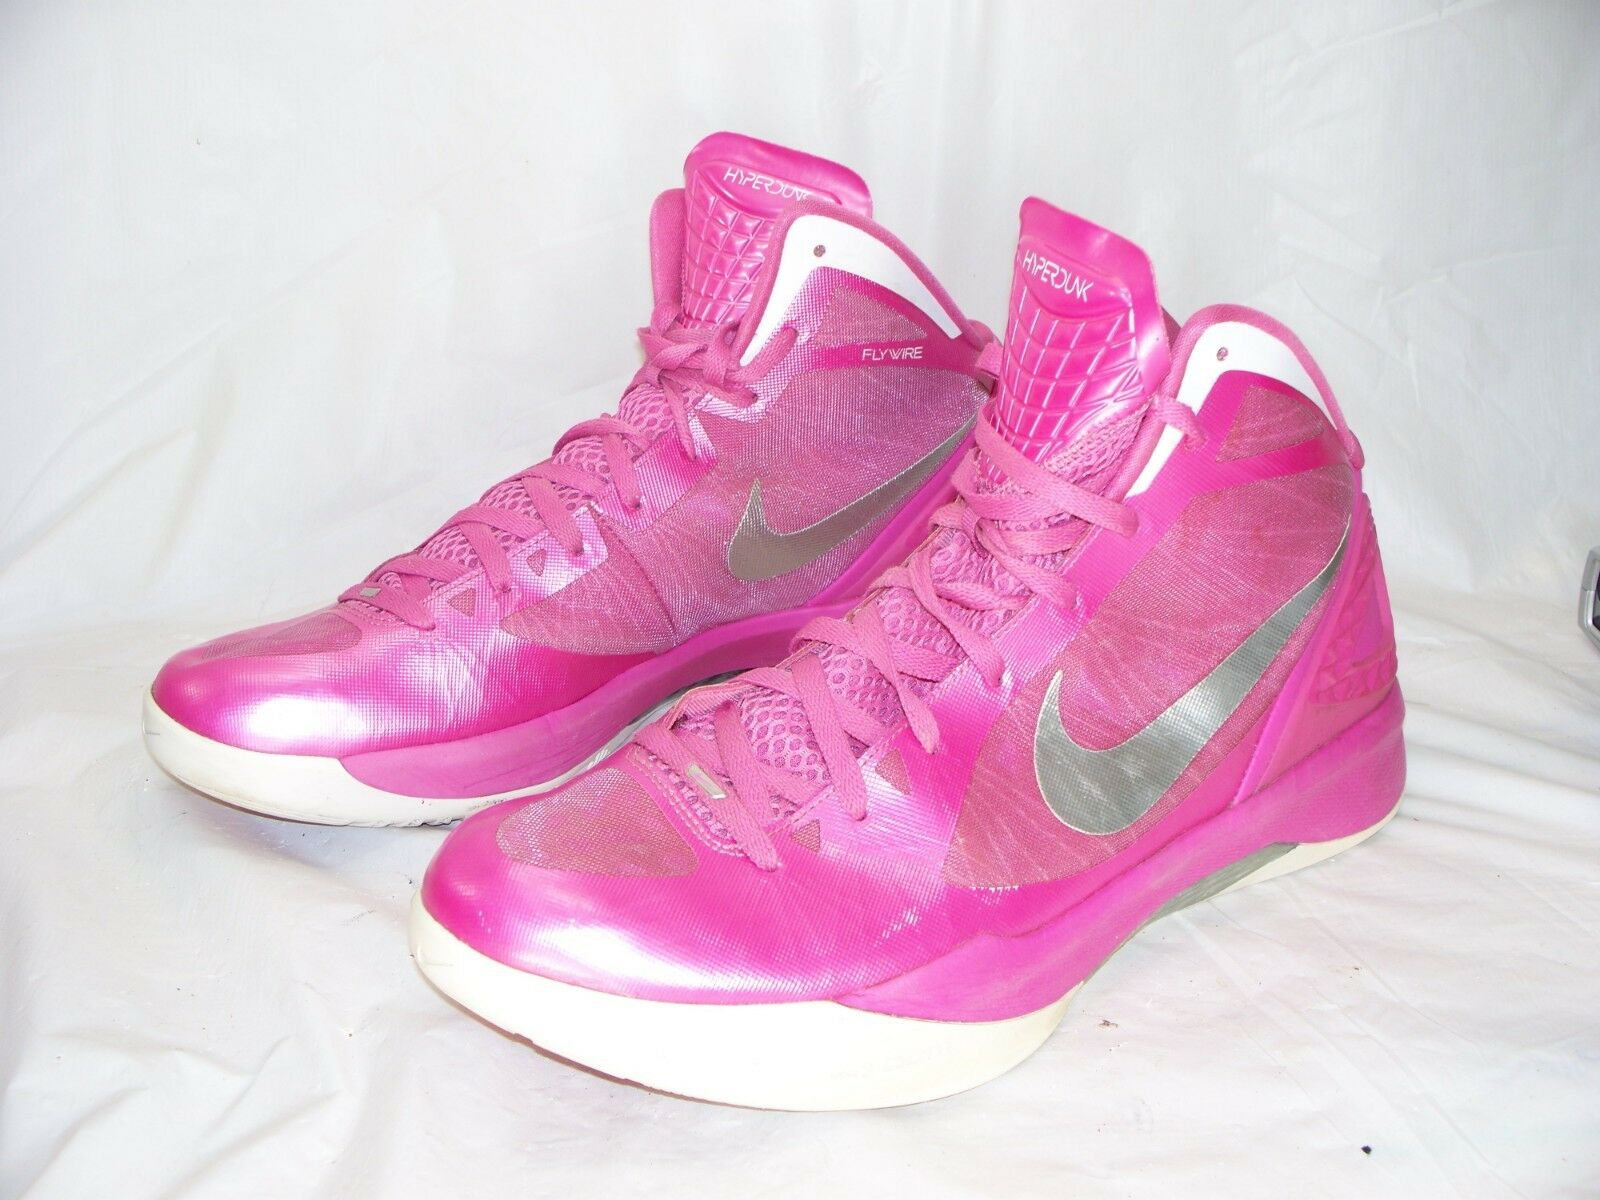 Nike Zoom Hyperdunk Mens Basketball shoes 454138 602 Breast Cancer Pink Size 15